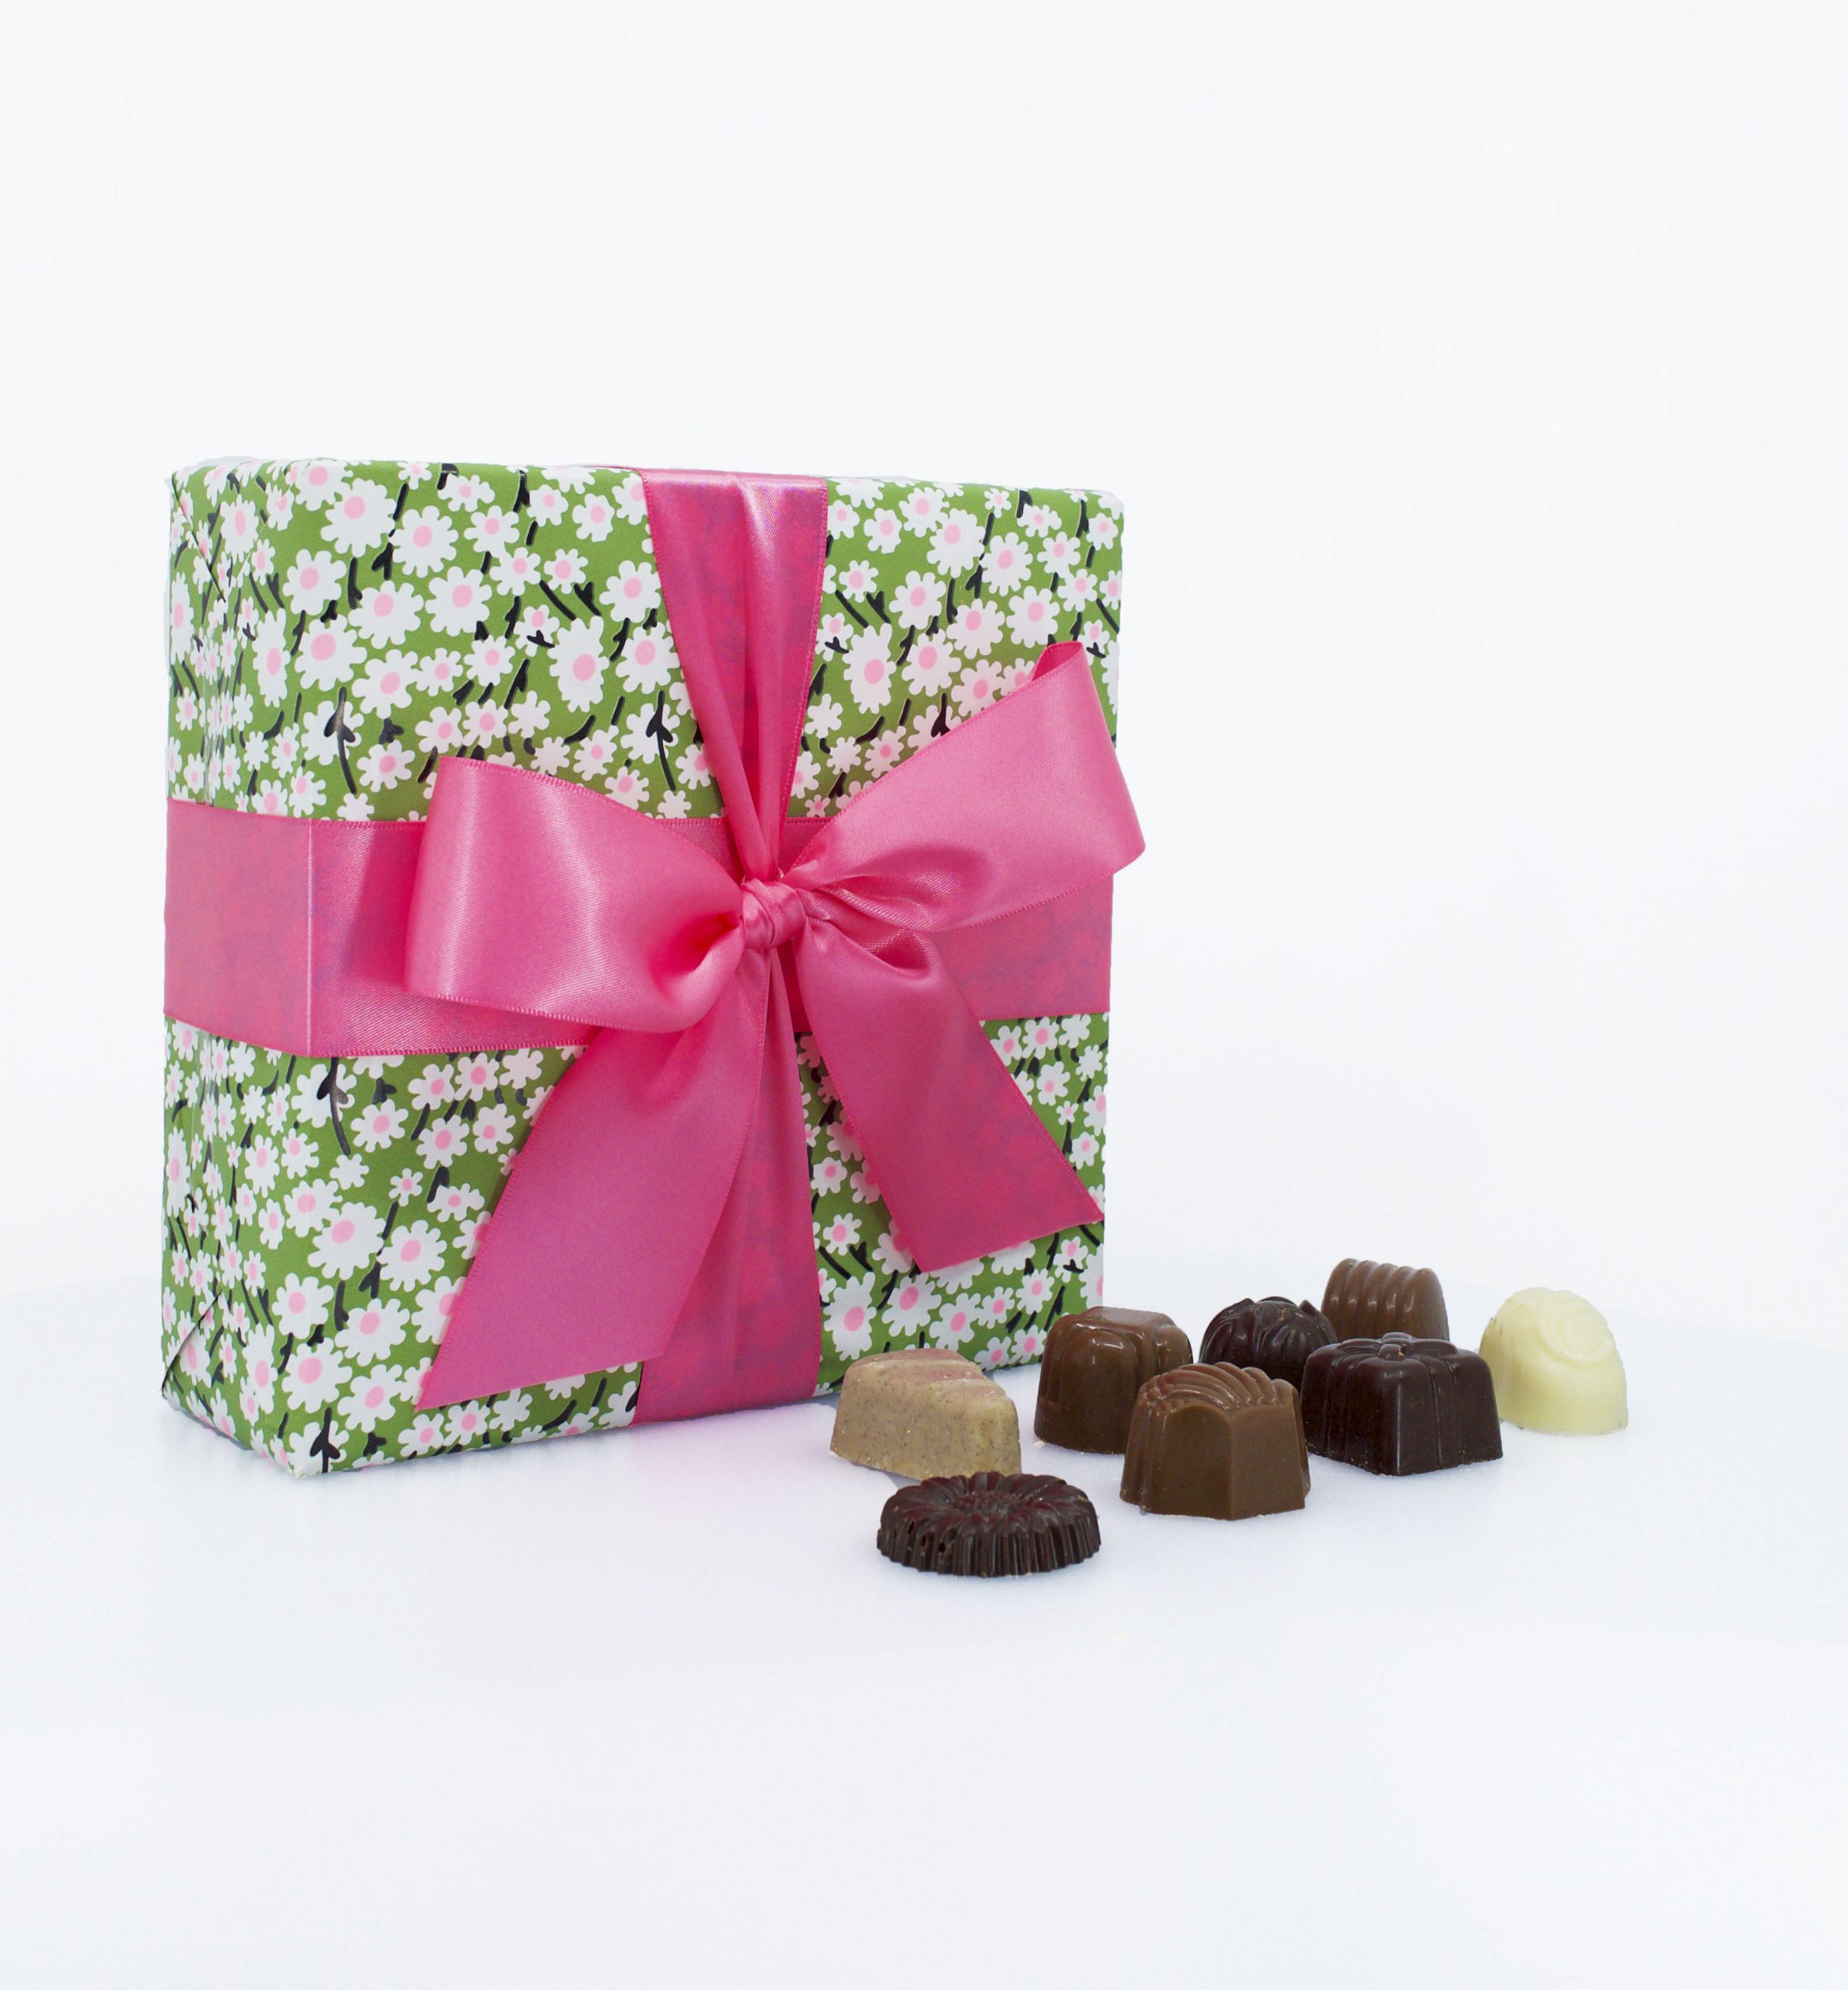 Spring Signature Gift Box of Assorted Chocolates